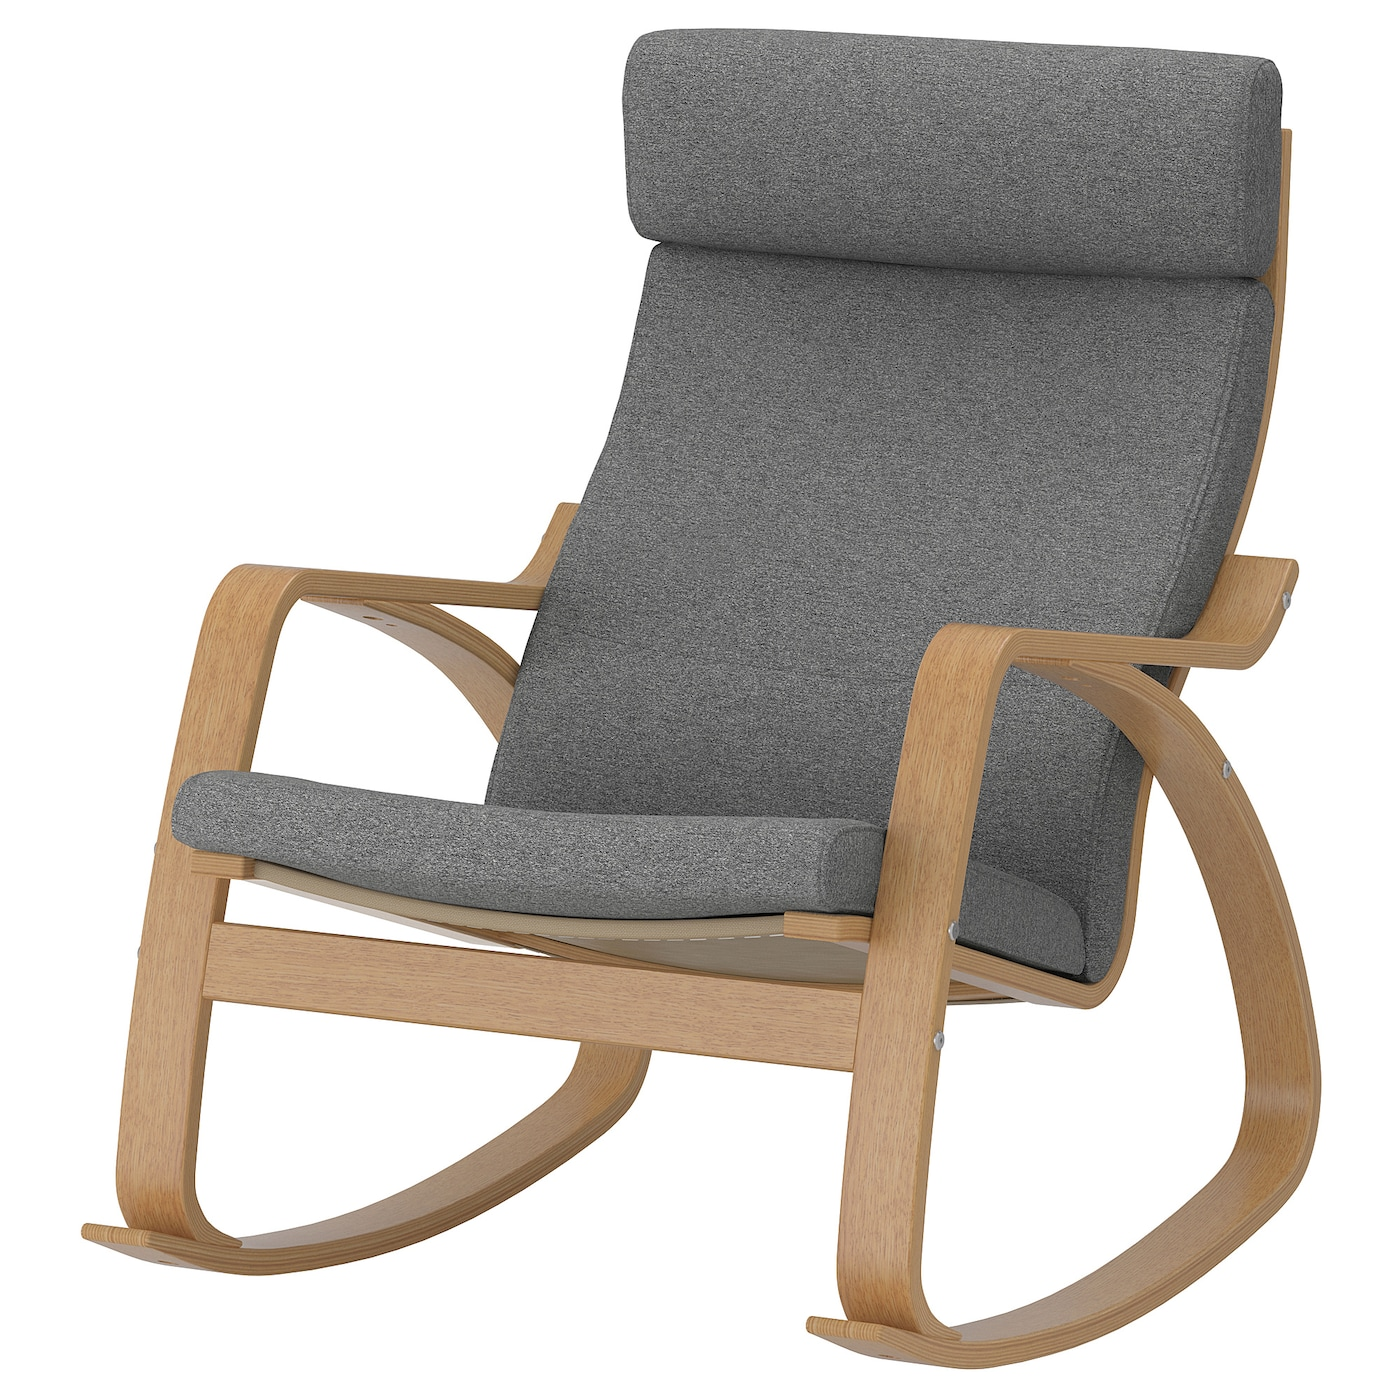 POÄNG Rocking chair oak veneer, Lysed grey